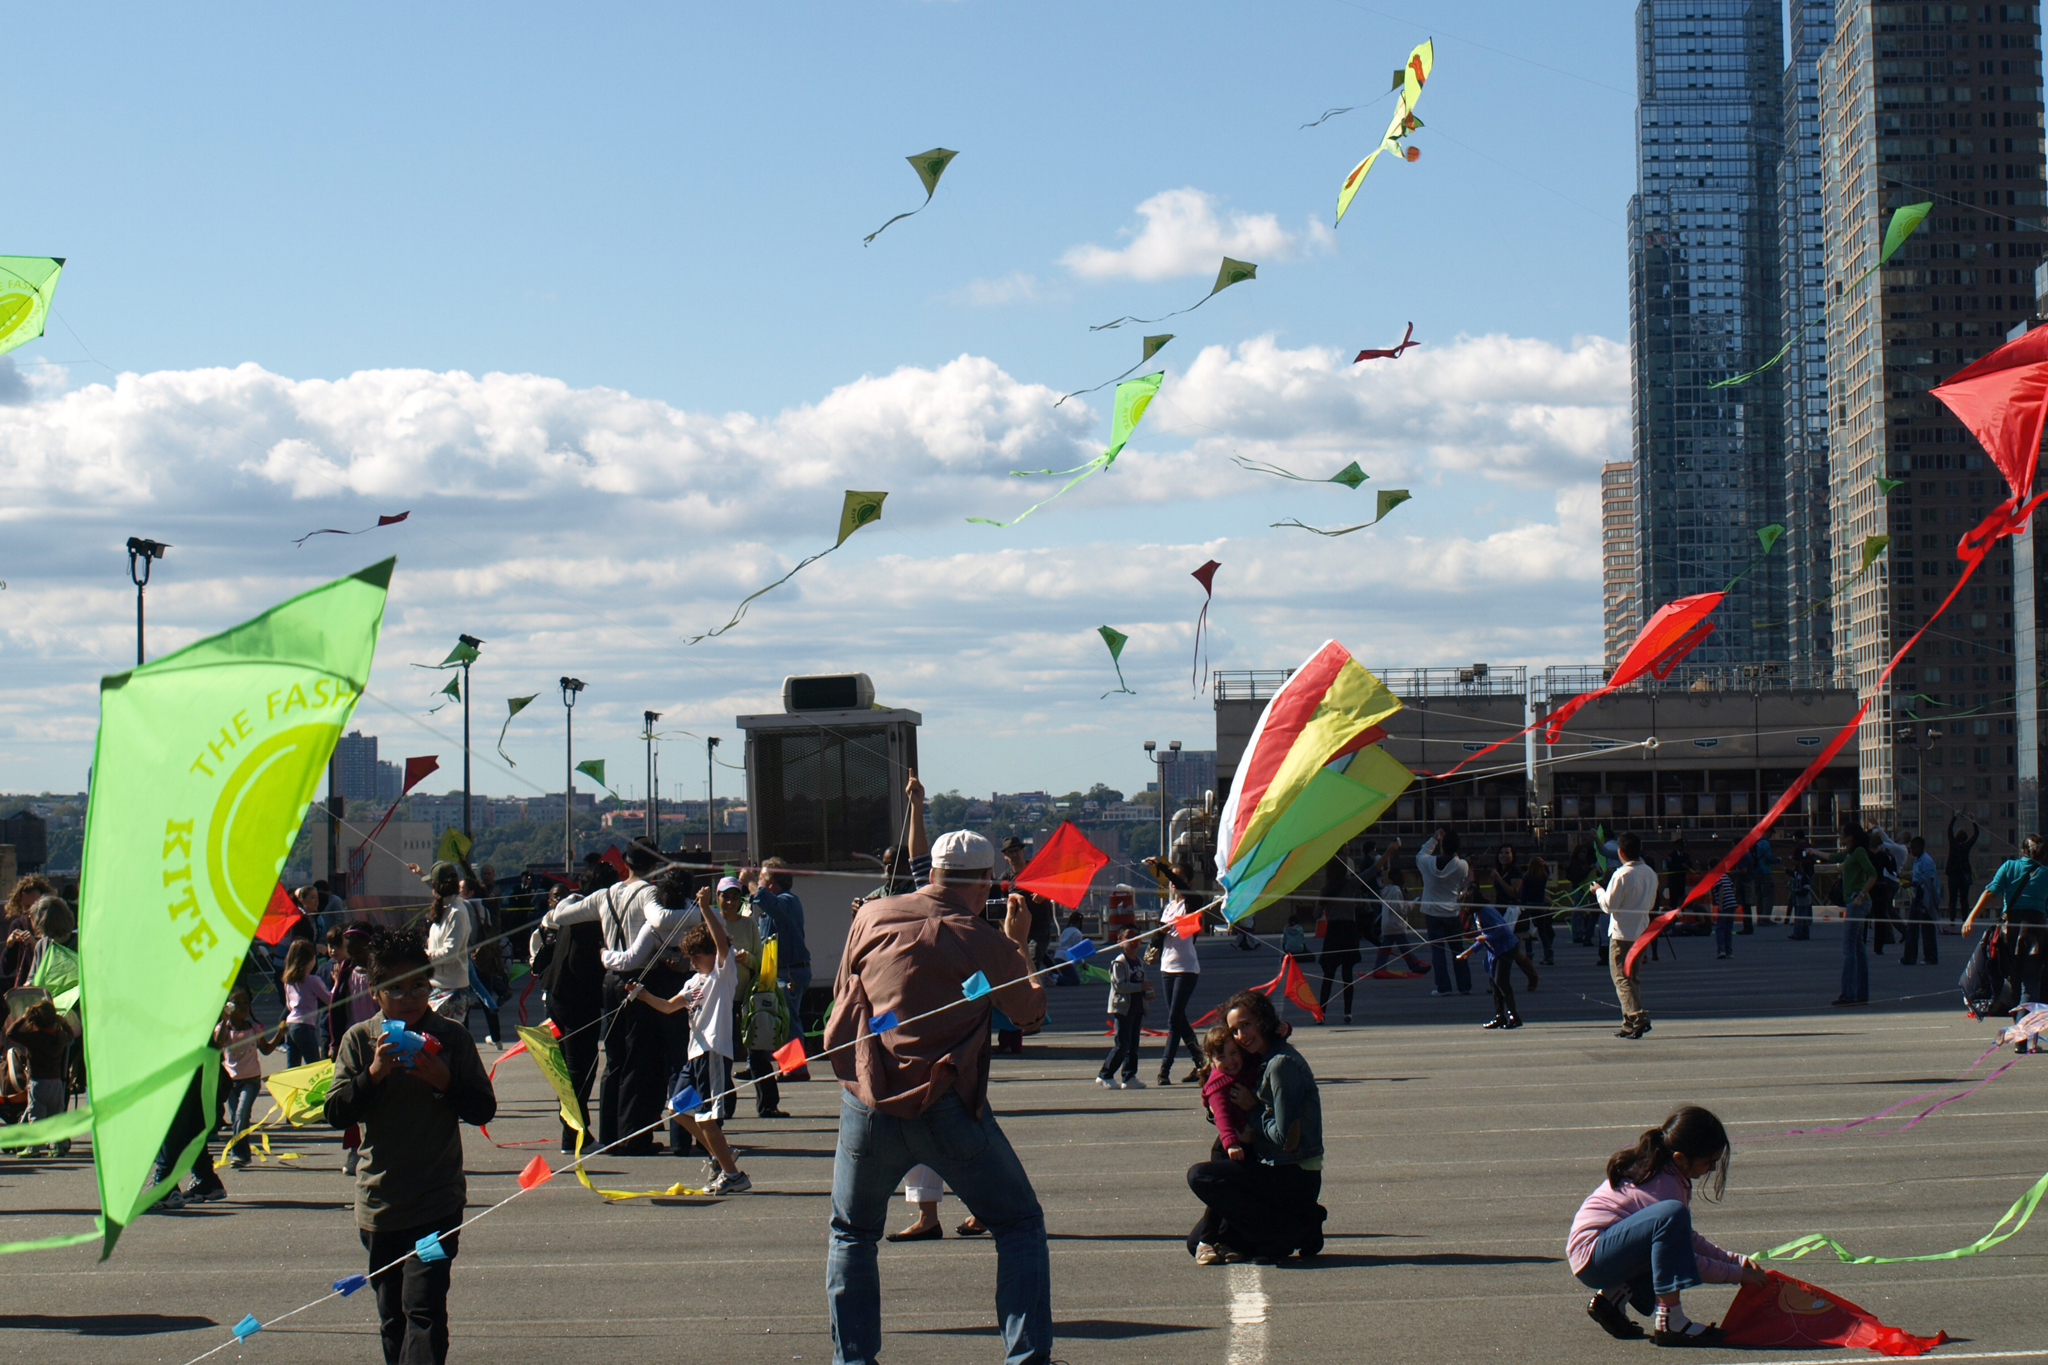 Kite Flight: DIY and Fly